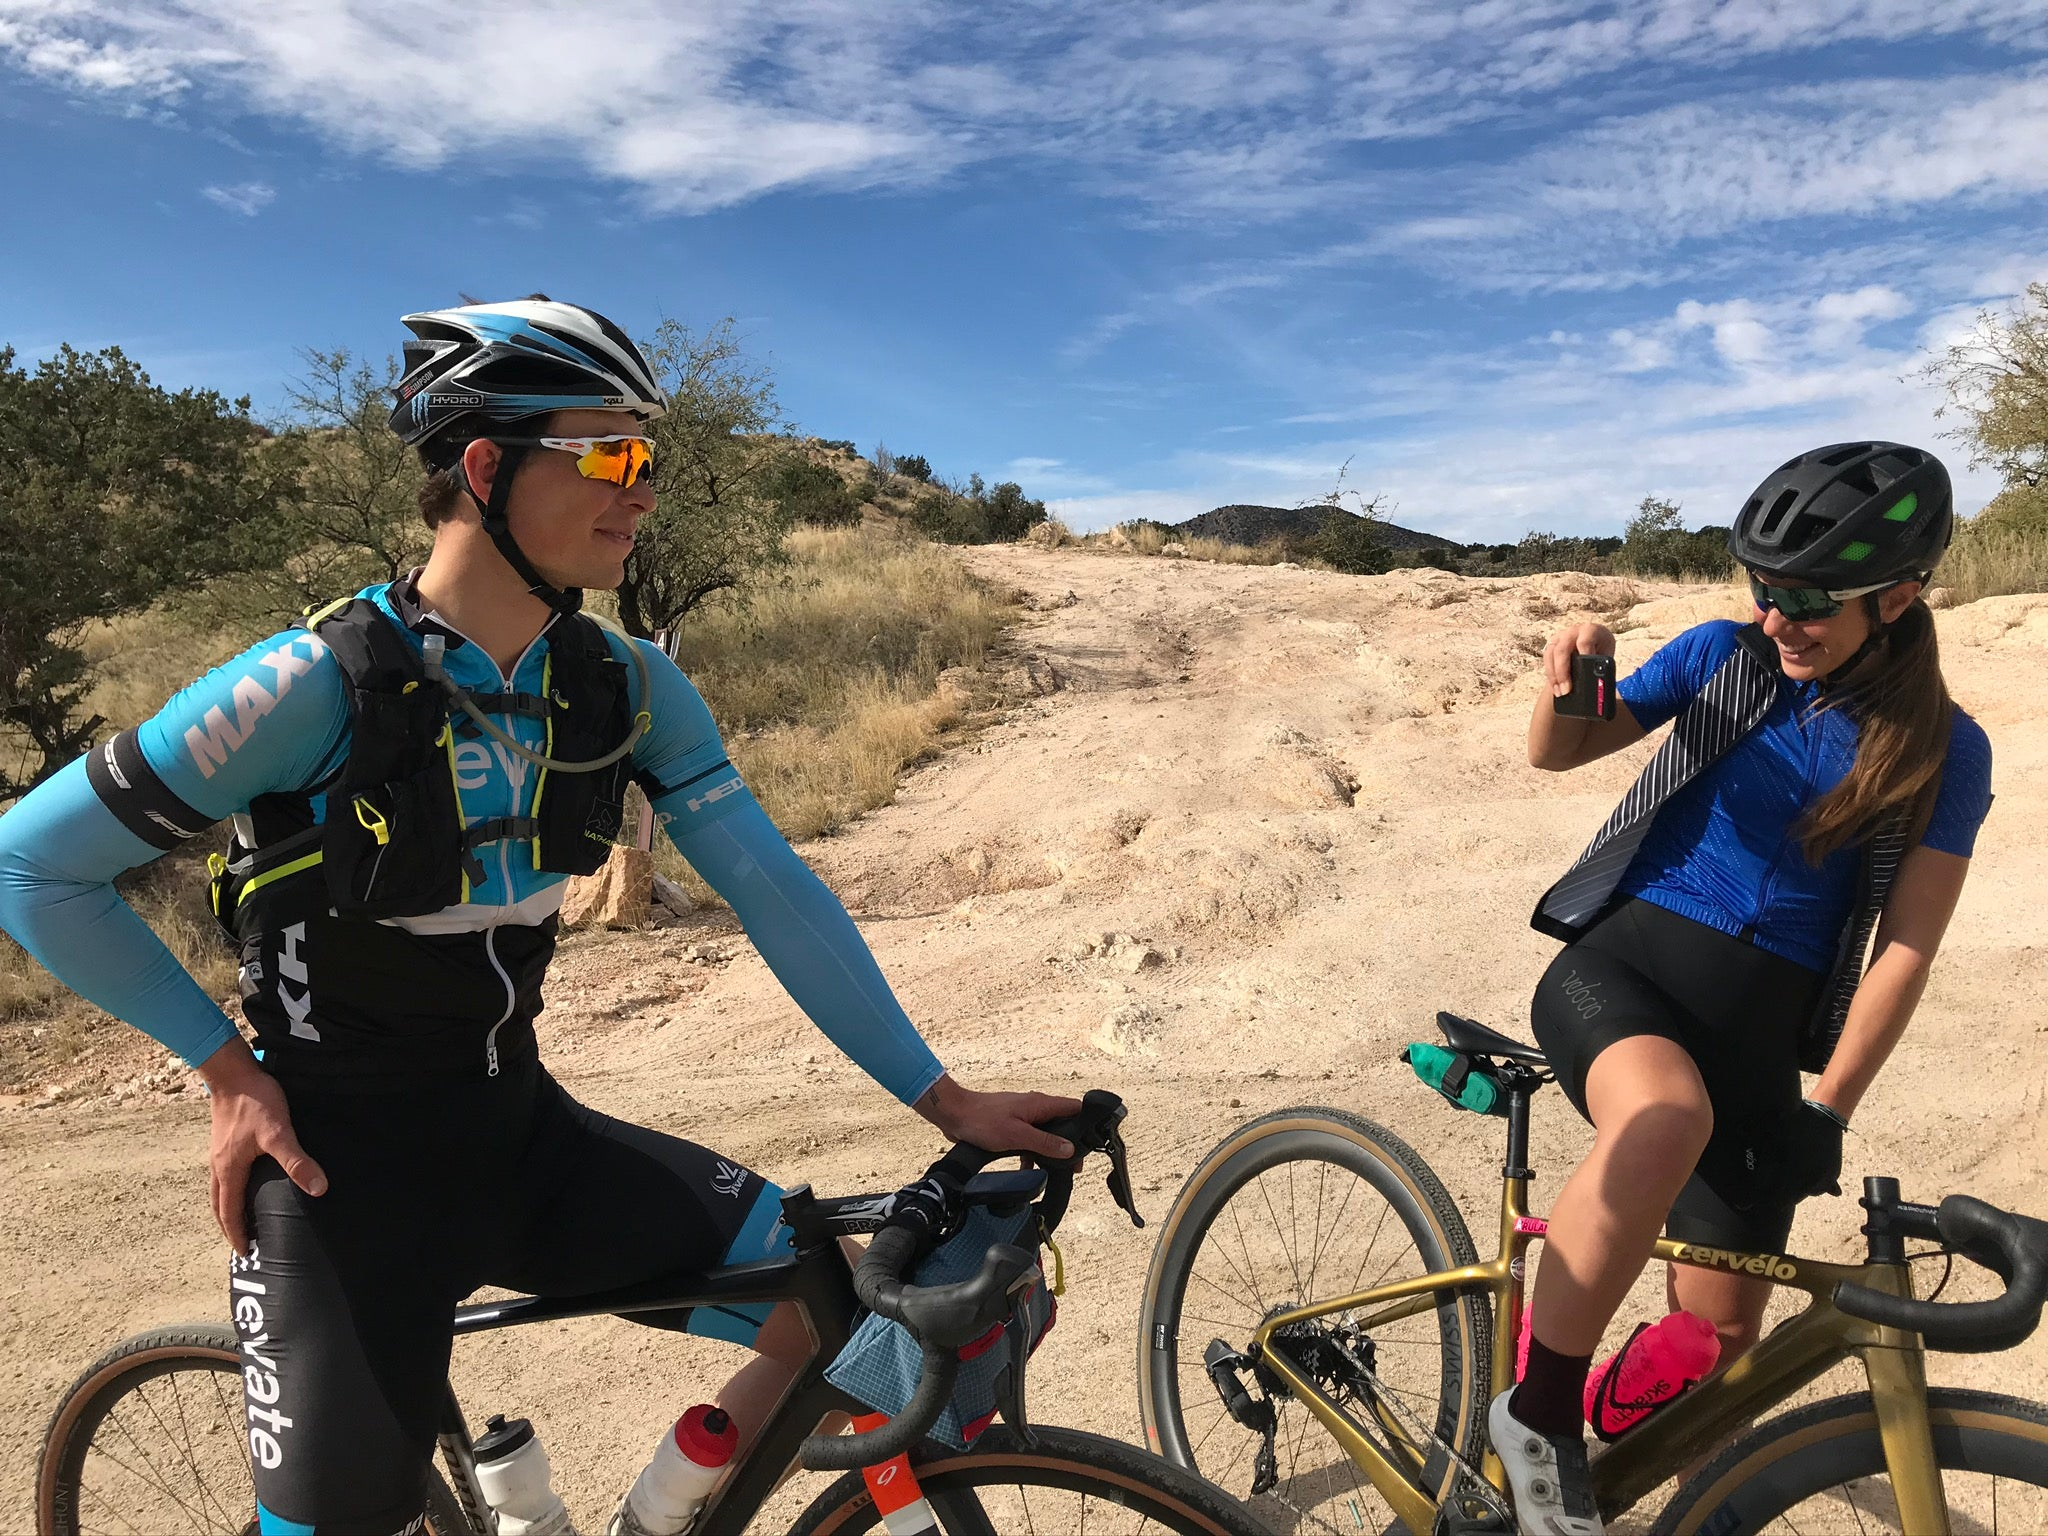 Getting stoked on Tucson riding